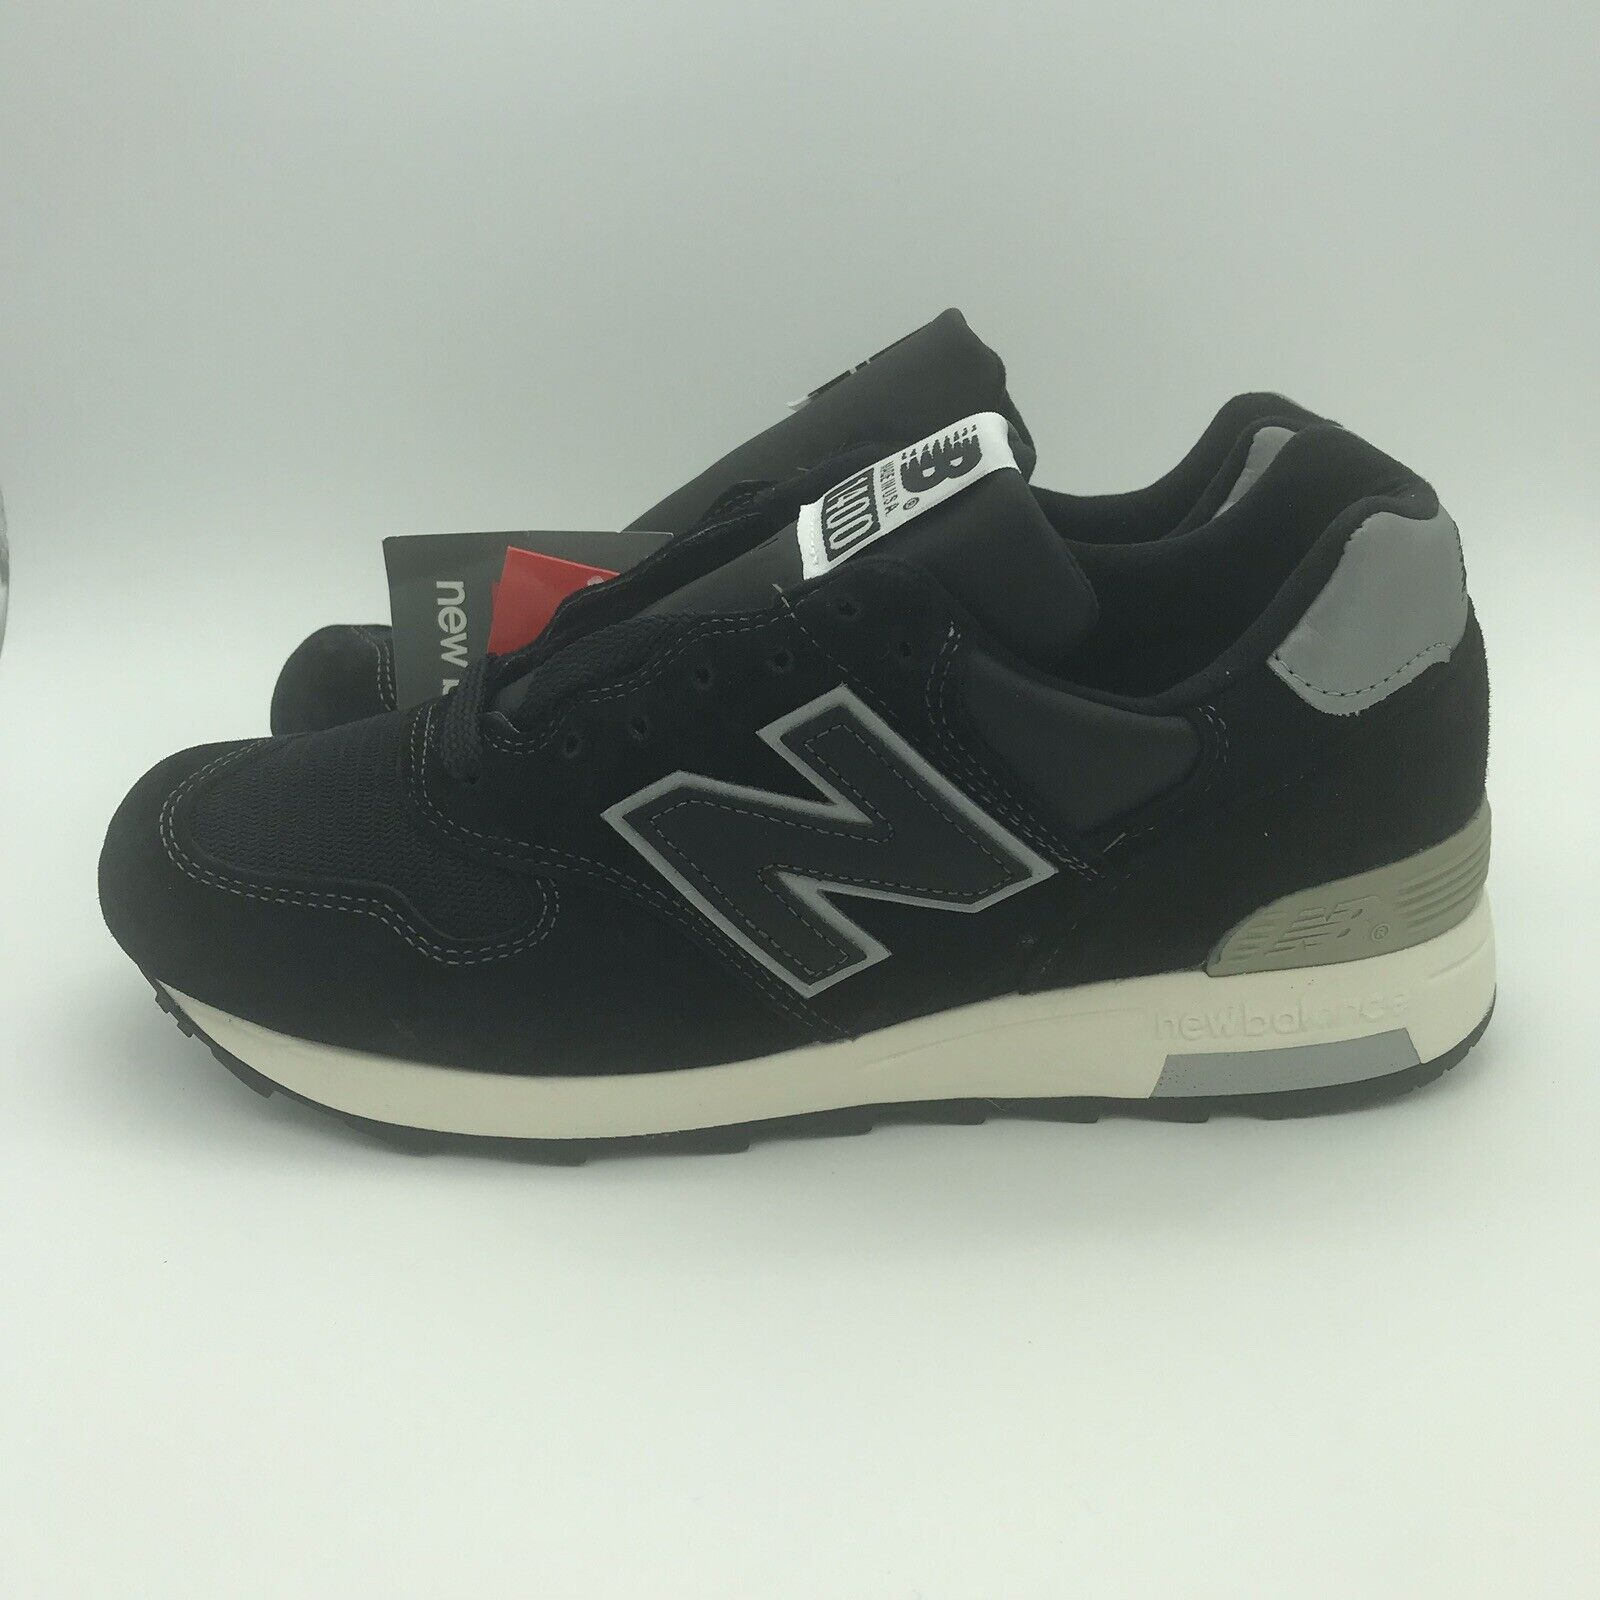 New Balance M1400BKS Black Silver White Made in USA Japan Exclusive Men's Size 7